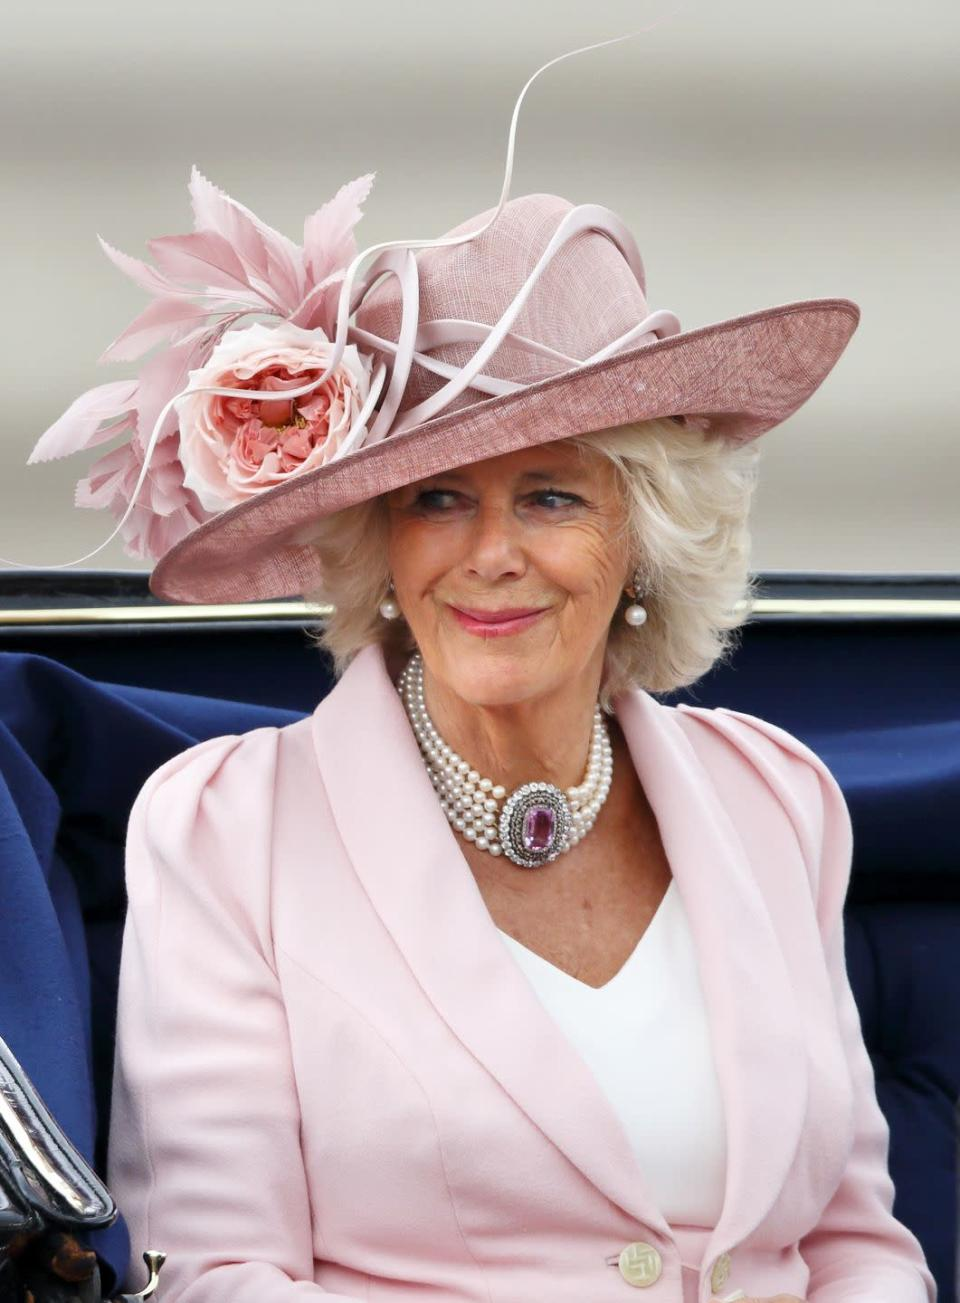 <p>Camilla, Duchess of Cornwall, brought the drama with a dynamic pink hat and matching suit for Trooping the Colour in 2014. </p>